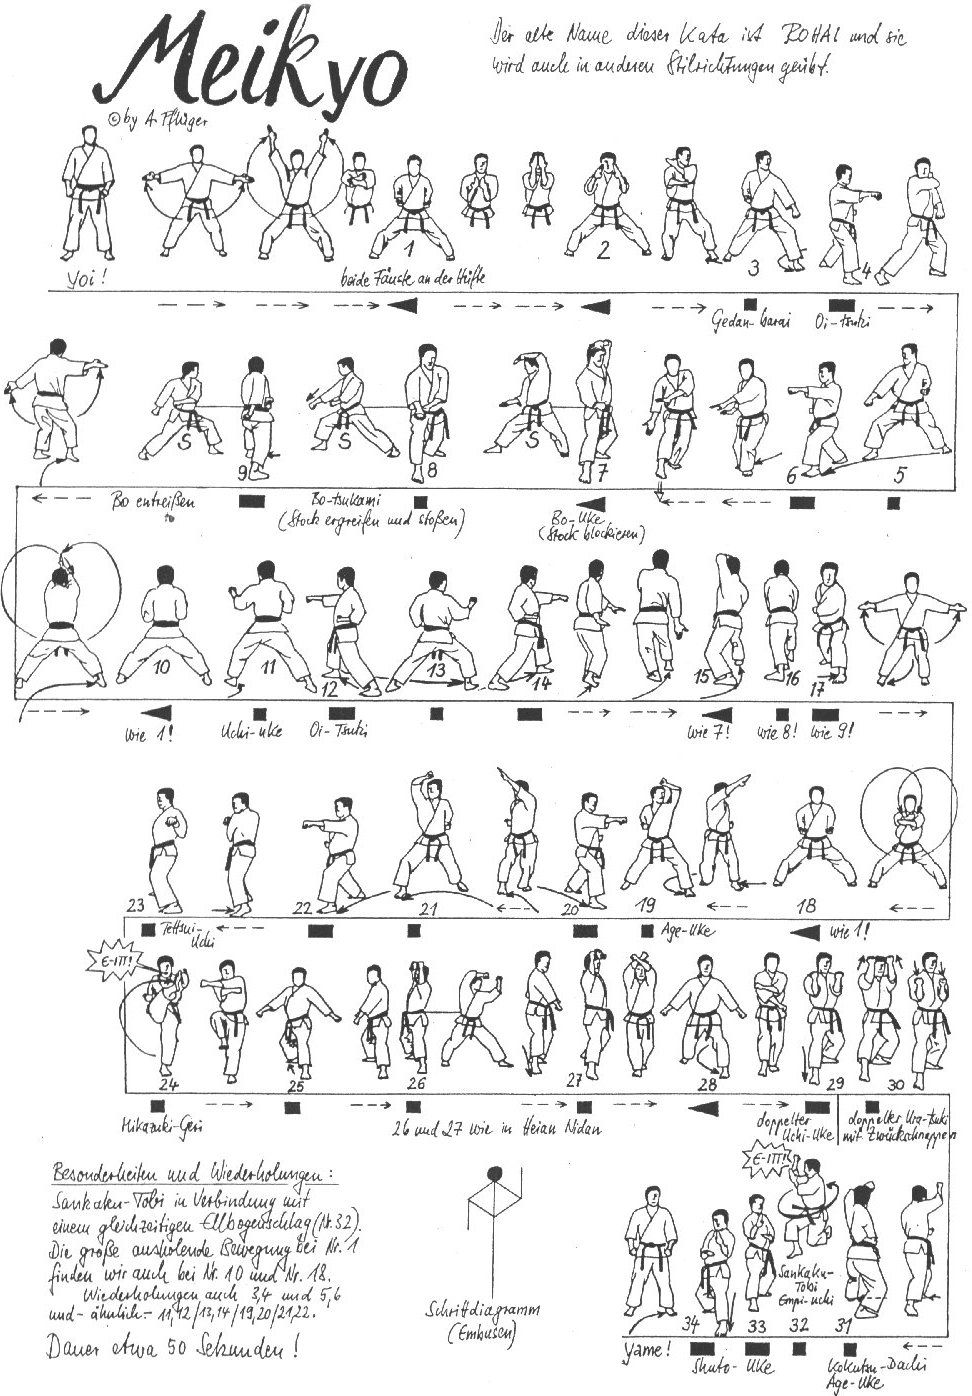 small resolution of shorin ryu kata diagrams shotokan karate katas shorin ryu karateshorin ryu kata diagrams shotokan karate katas